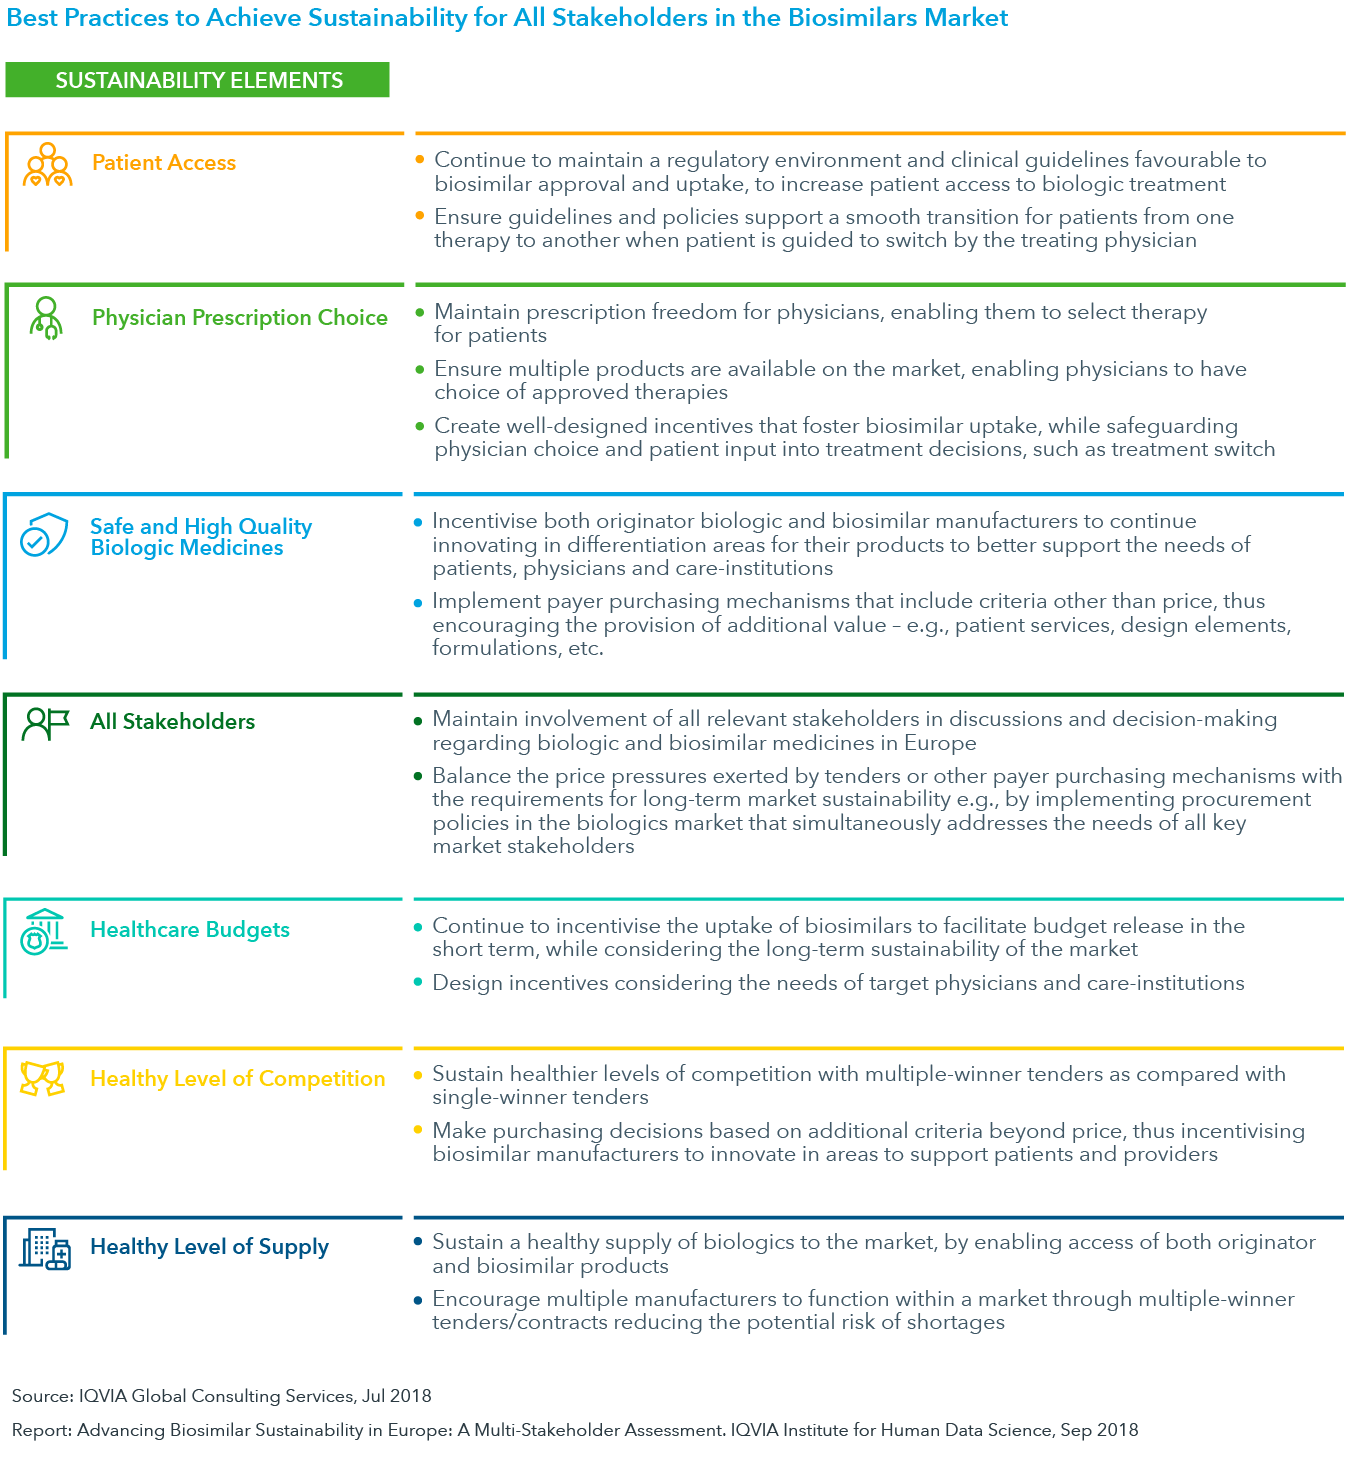 Chart 21: Best Practices to Achieve Sustainability for All Stakeholders in the Biosimilars Market